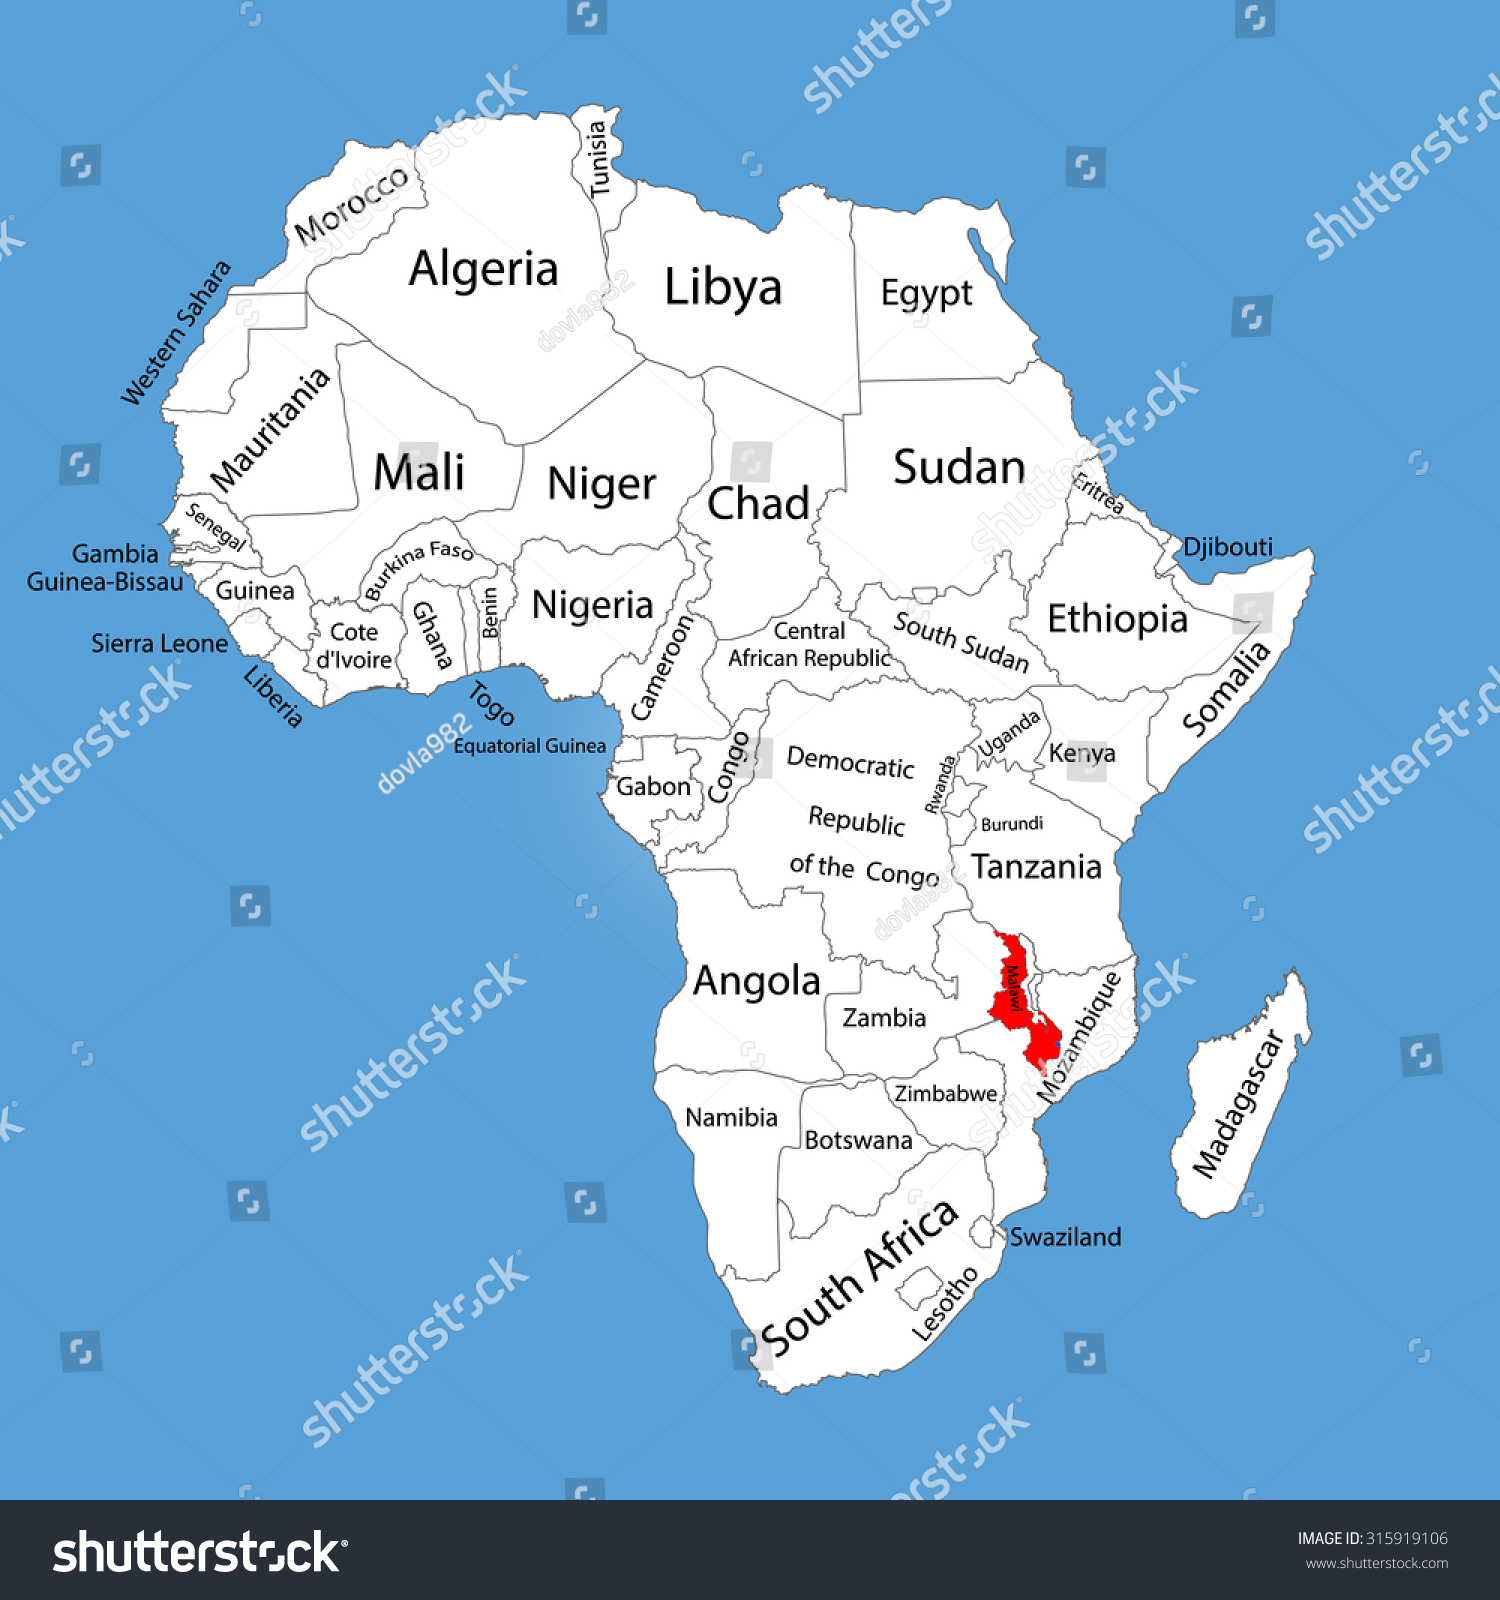 malawi south africa map Malawi Vector Map Silhouette Isolated On Stock Vector Royalty malawi south africa map